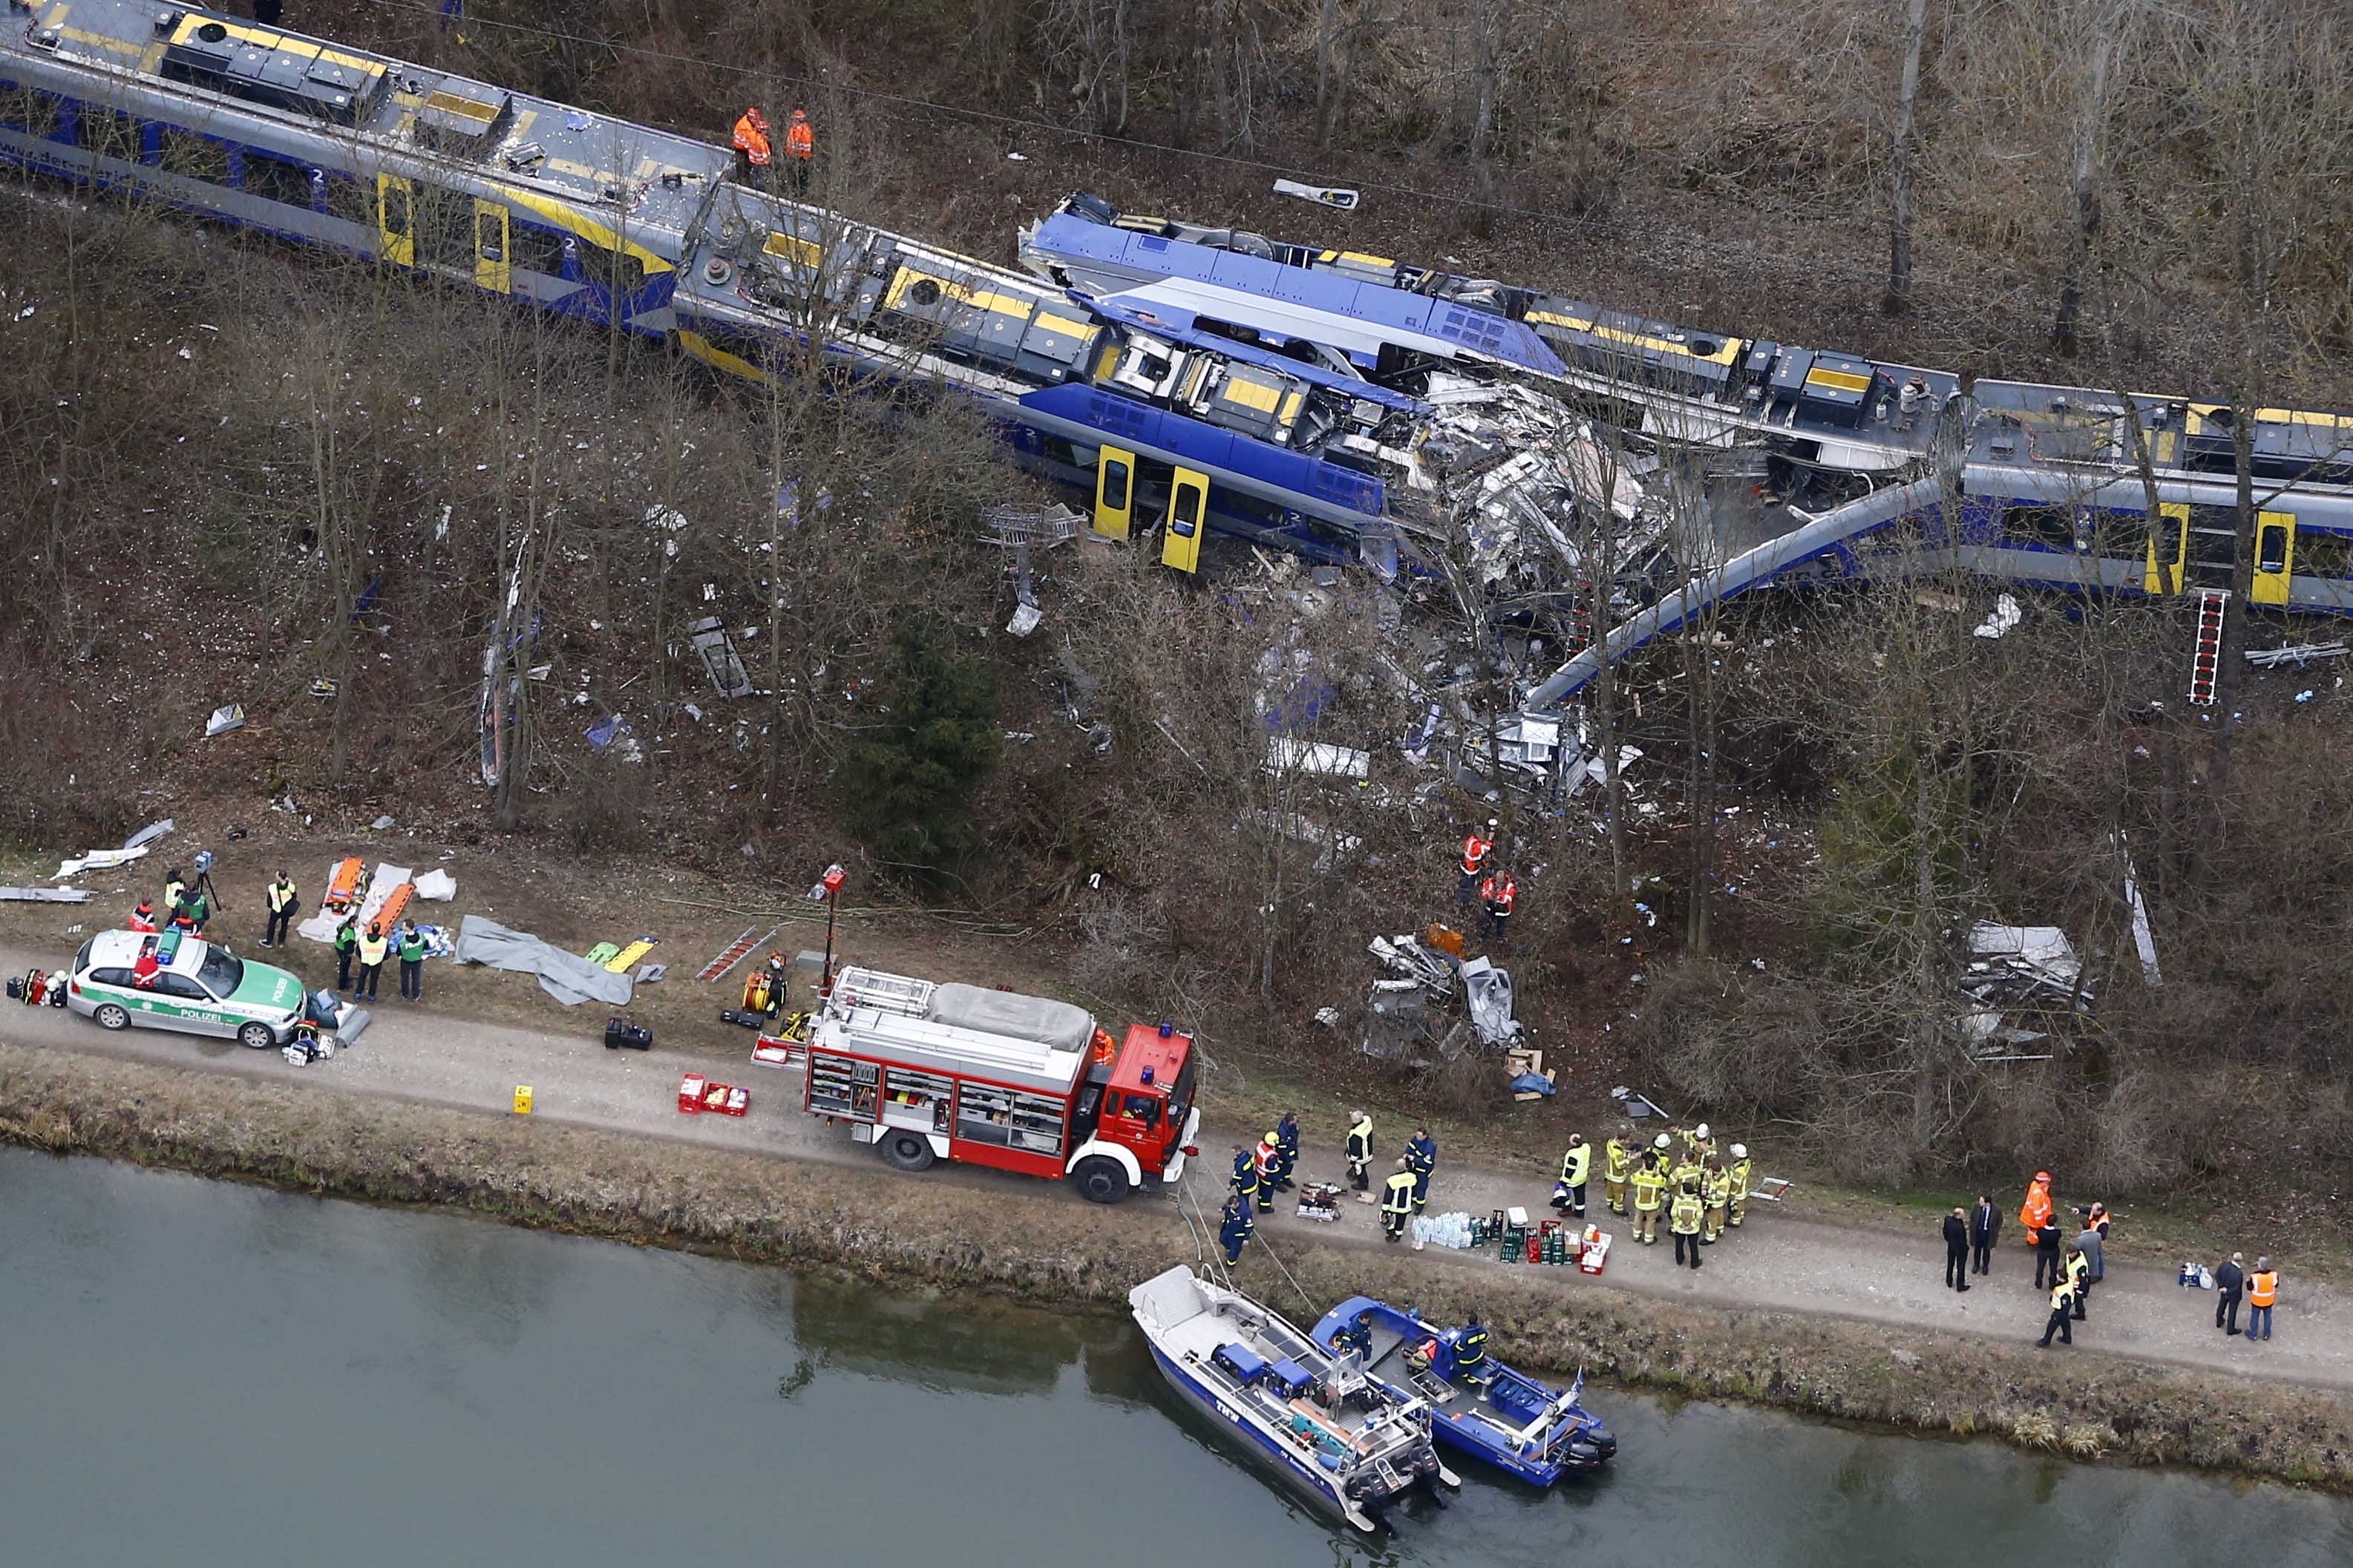 Signal controller had been playing games on his phone before German train crash